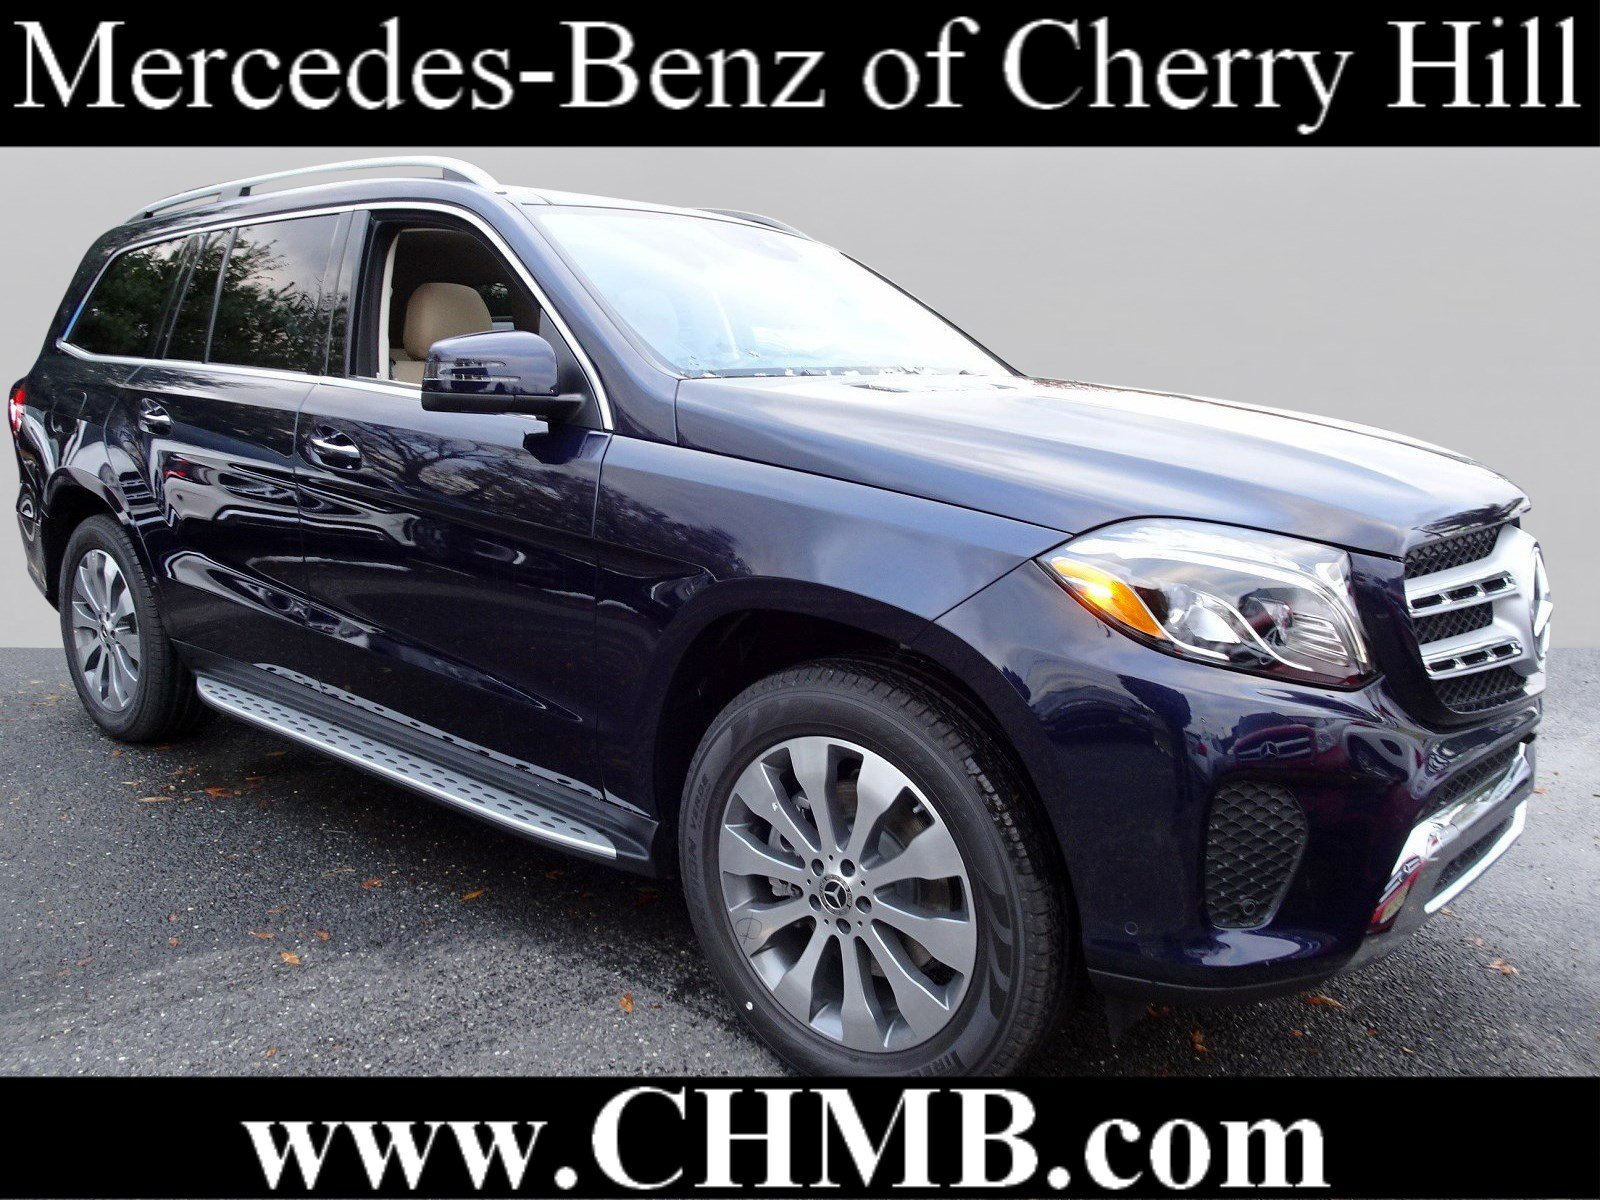 Mercedes Benz C230 Panel Speaker On Wiring Harness For Trailer Hitch New 2019 Gls 450 Sport Utility In Cherry Hill